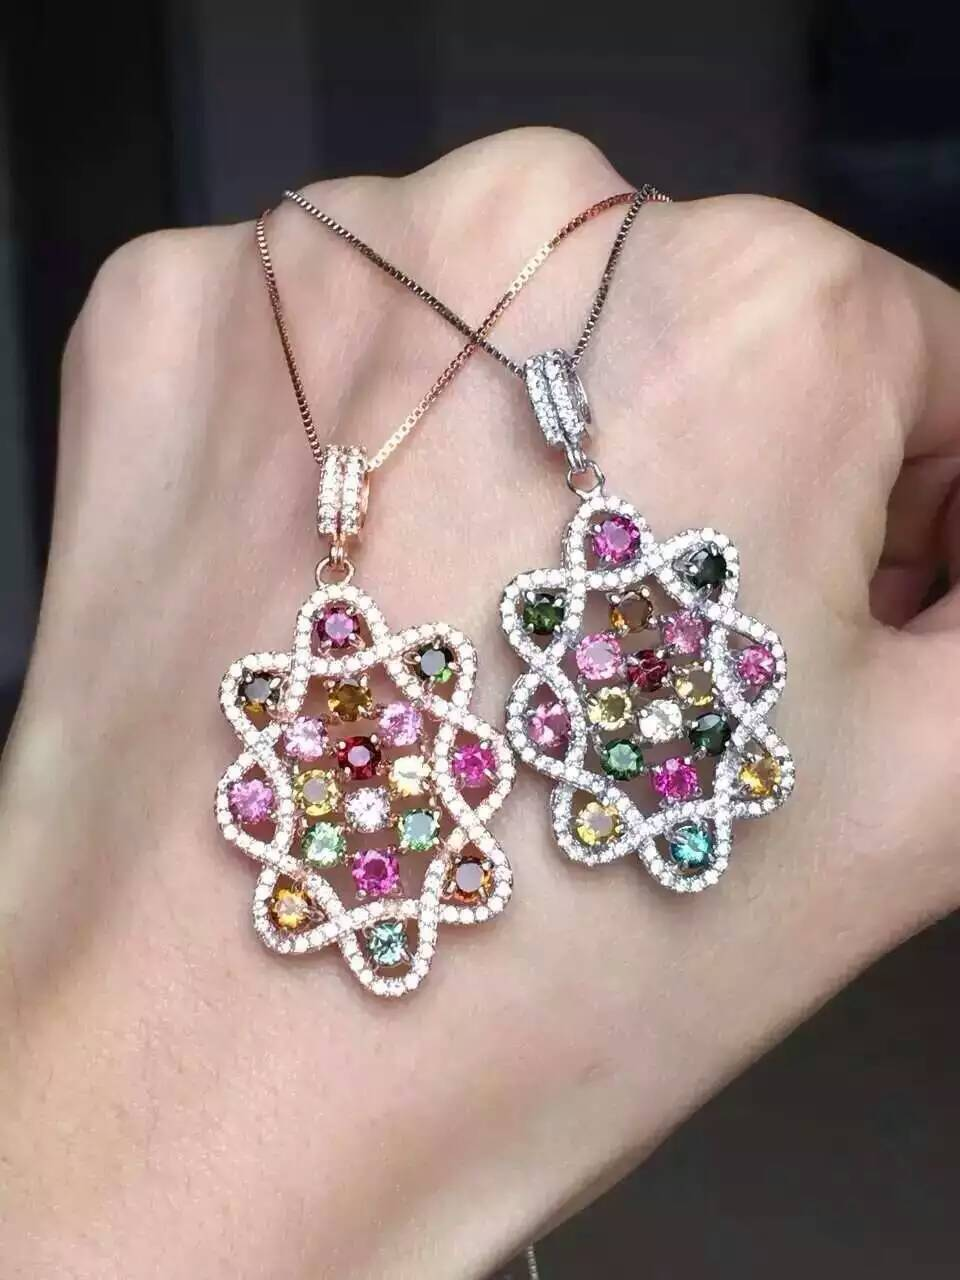 natural multicolor tourmaline pendant S925 silver Natural gemstone Pendant Necklace trendy Luxury Hydrangea ball women jewelry natural multicolor tourmaline pendant s925 silver natural gemstone pendant necklace trendy romantic peach heart women jewelry